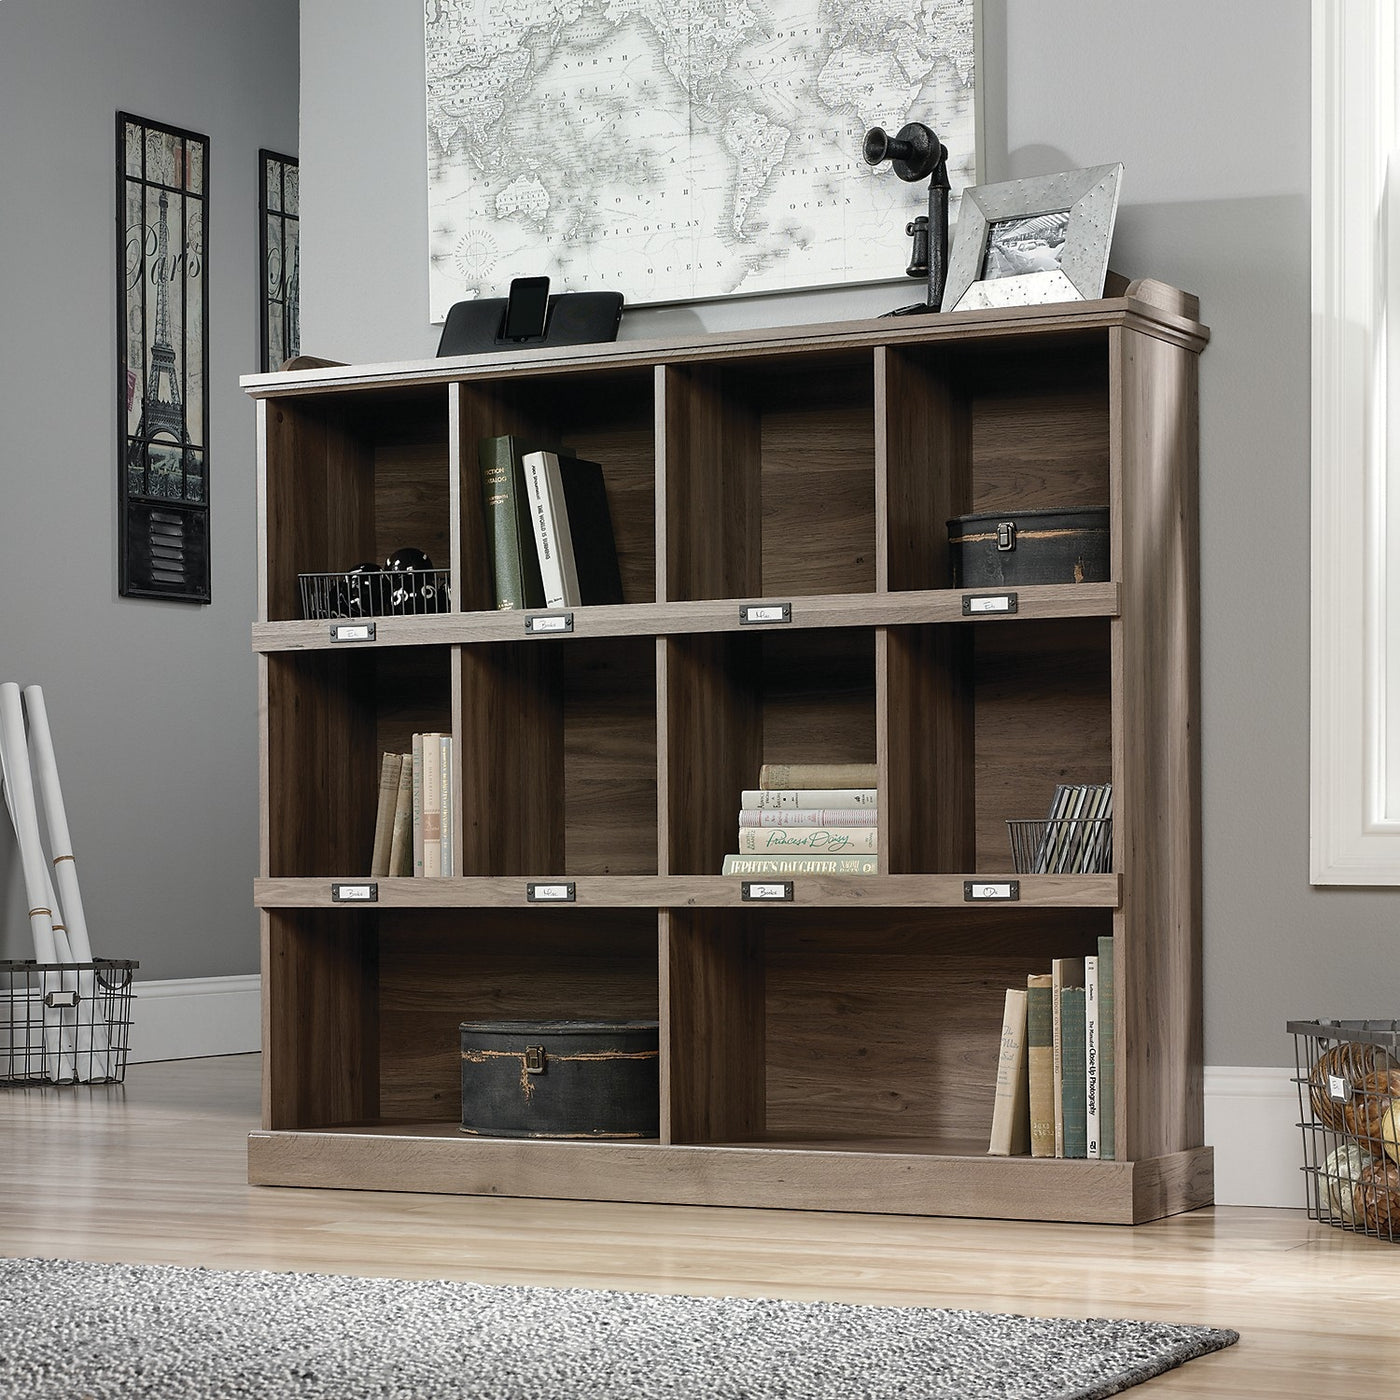 Barrister Lane Wide Bookcase Salt Oak